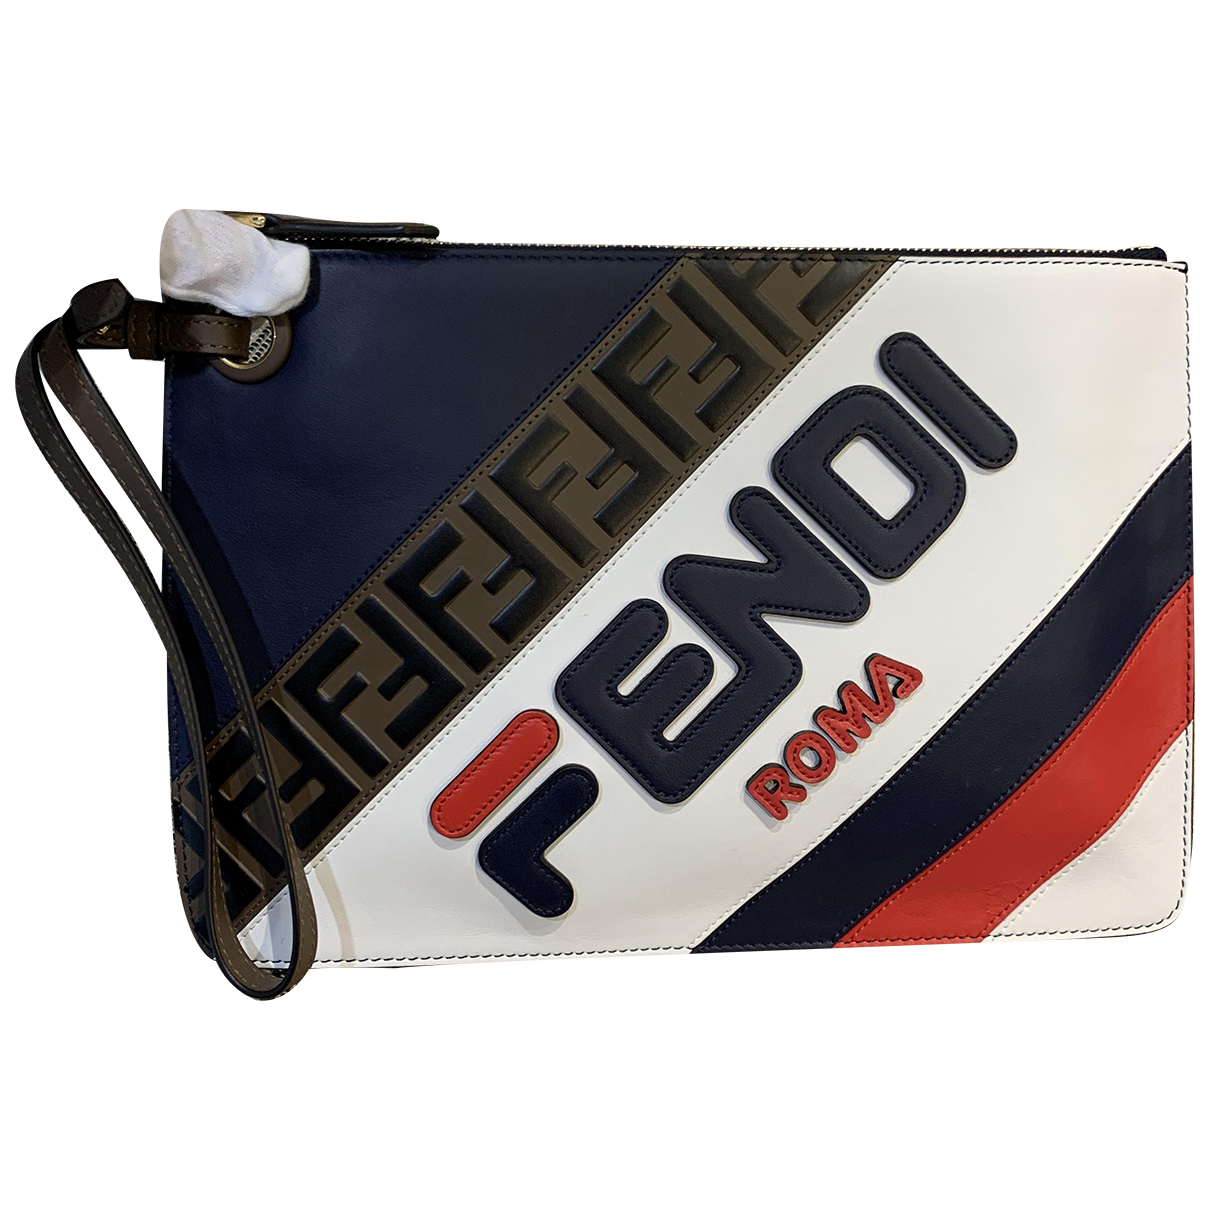 Fendi X Fila \N Multicolour Leather Clutch bag for Women \N